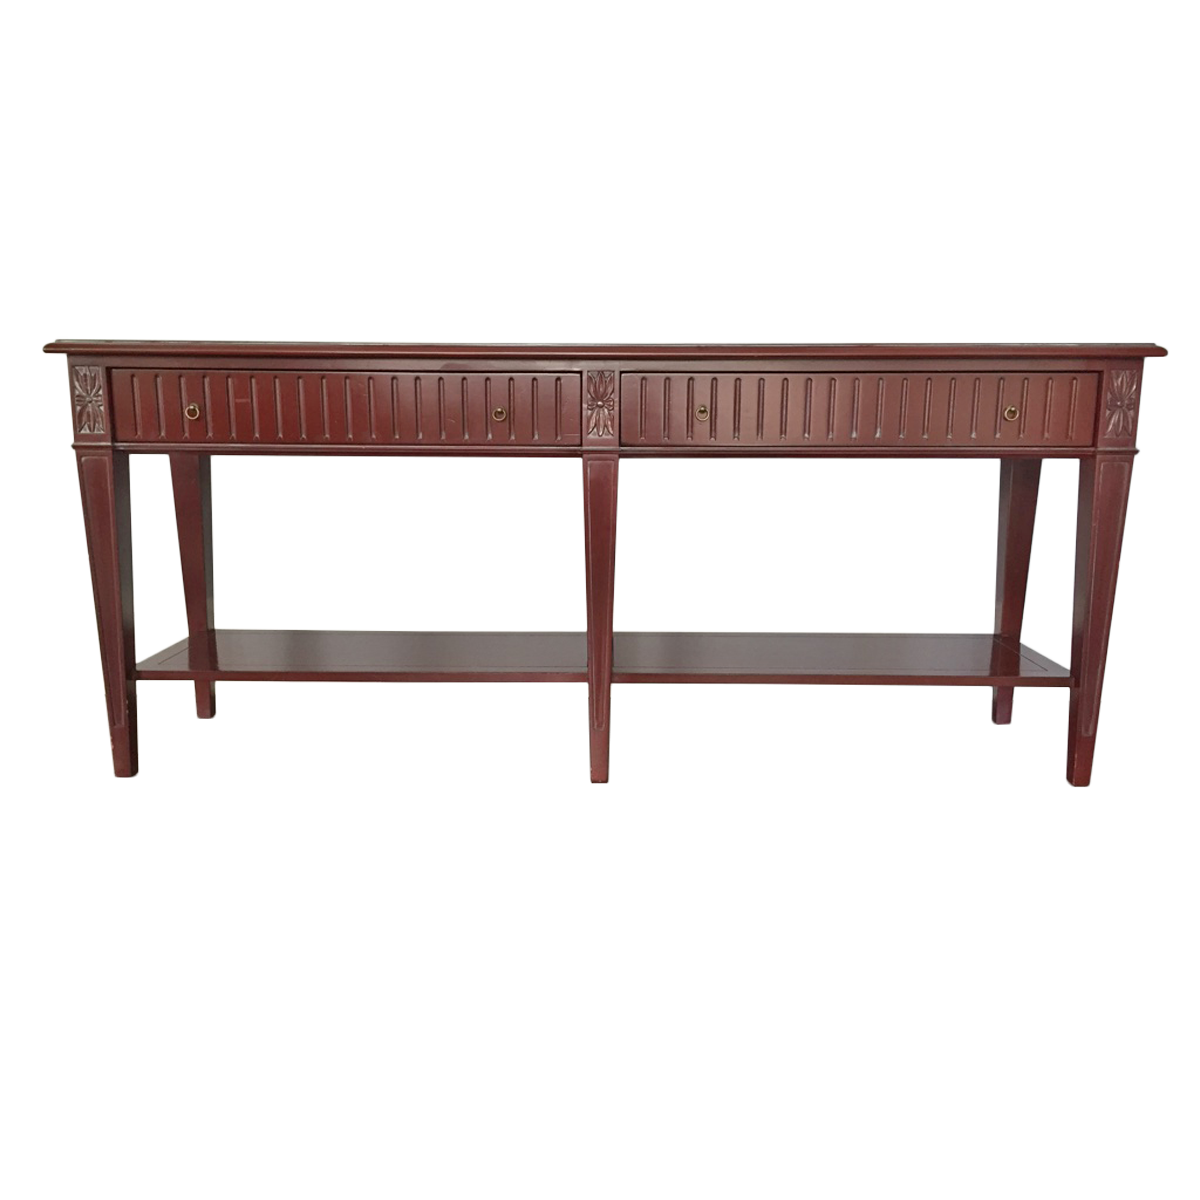 Grange double drawer console table front view mens offices grange double drawer console table front view geotapseo Choice Image